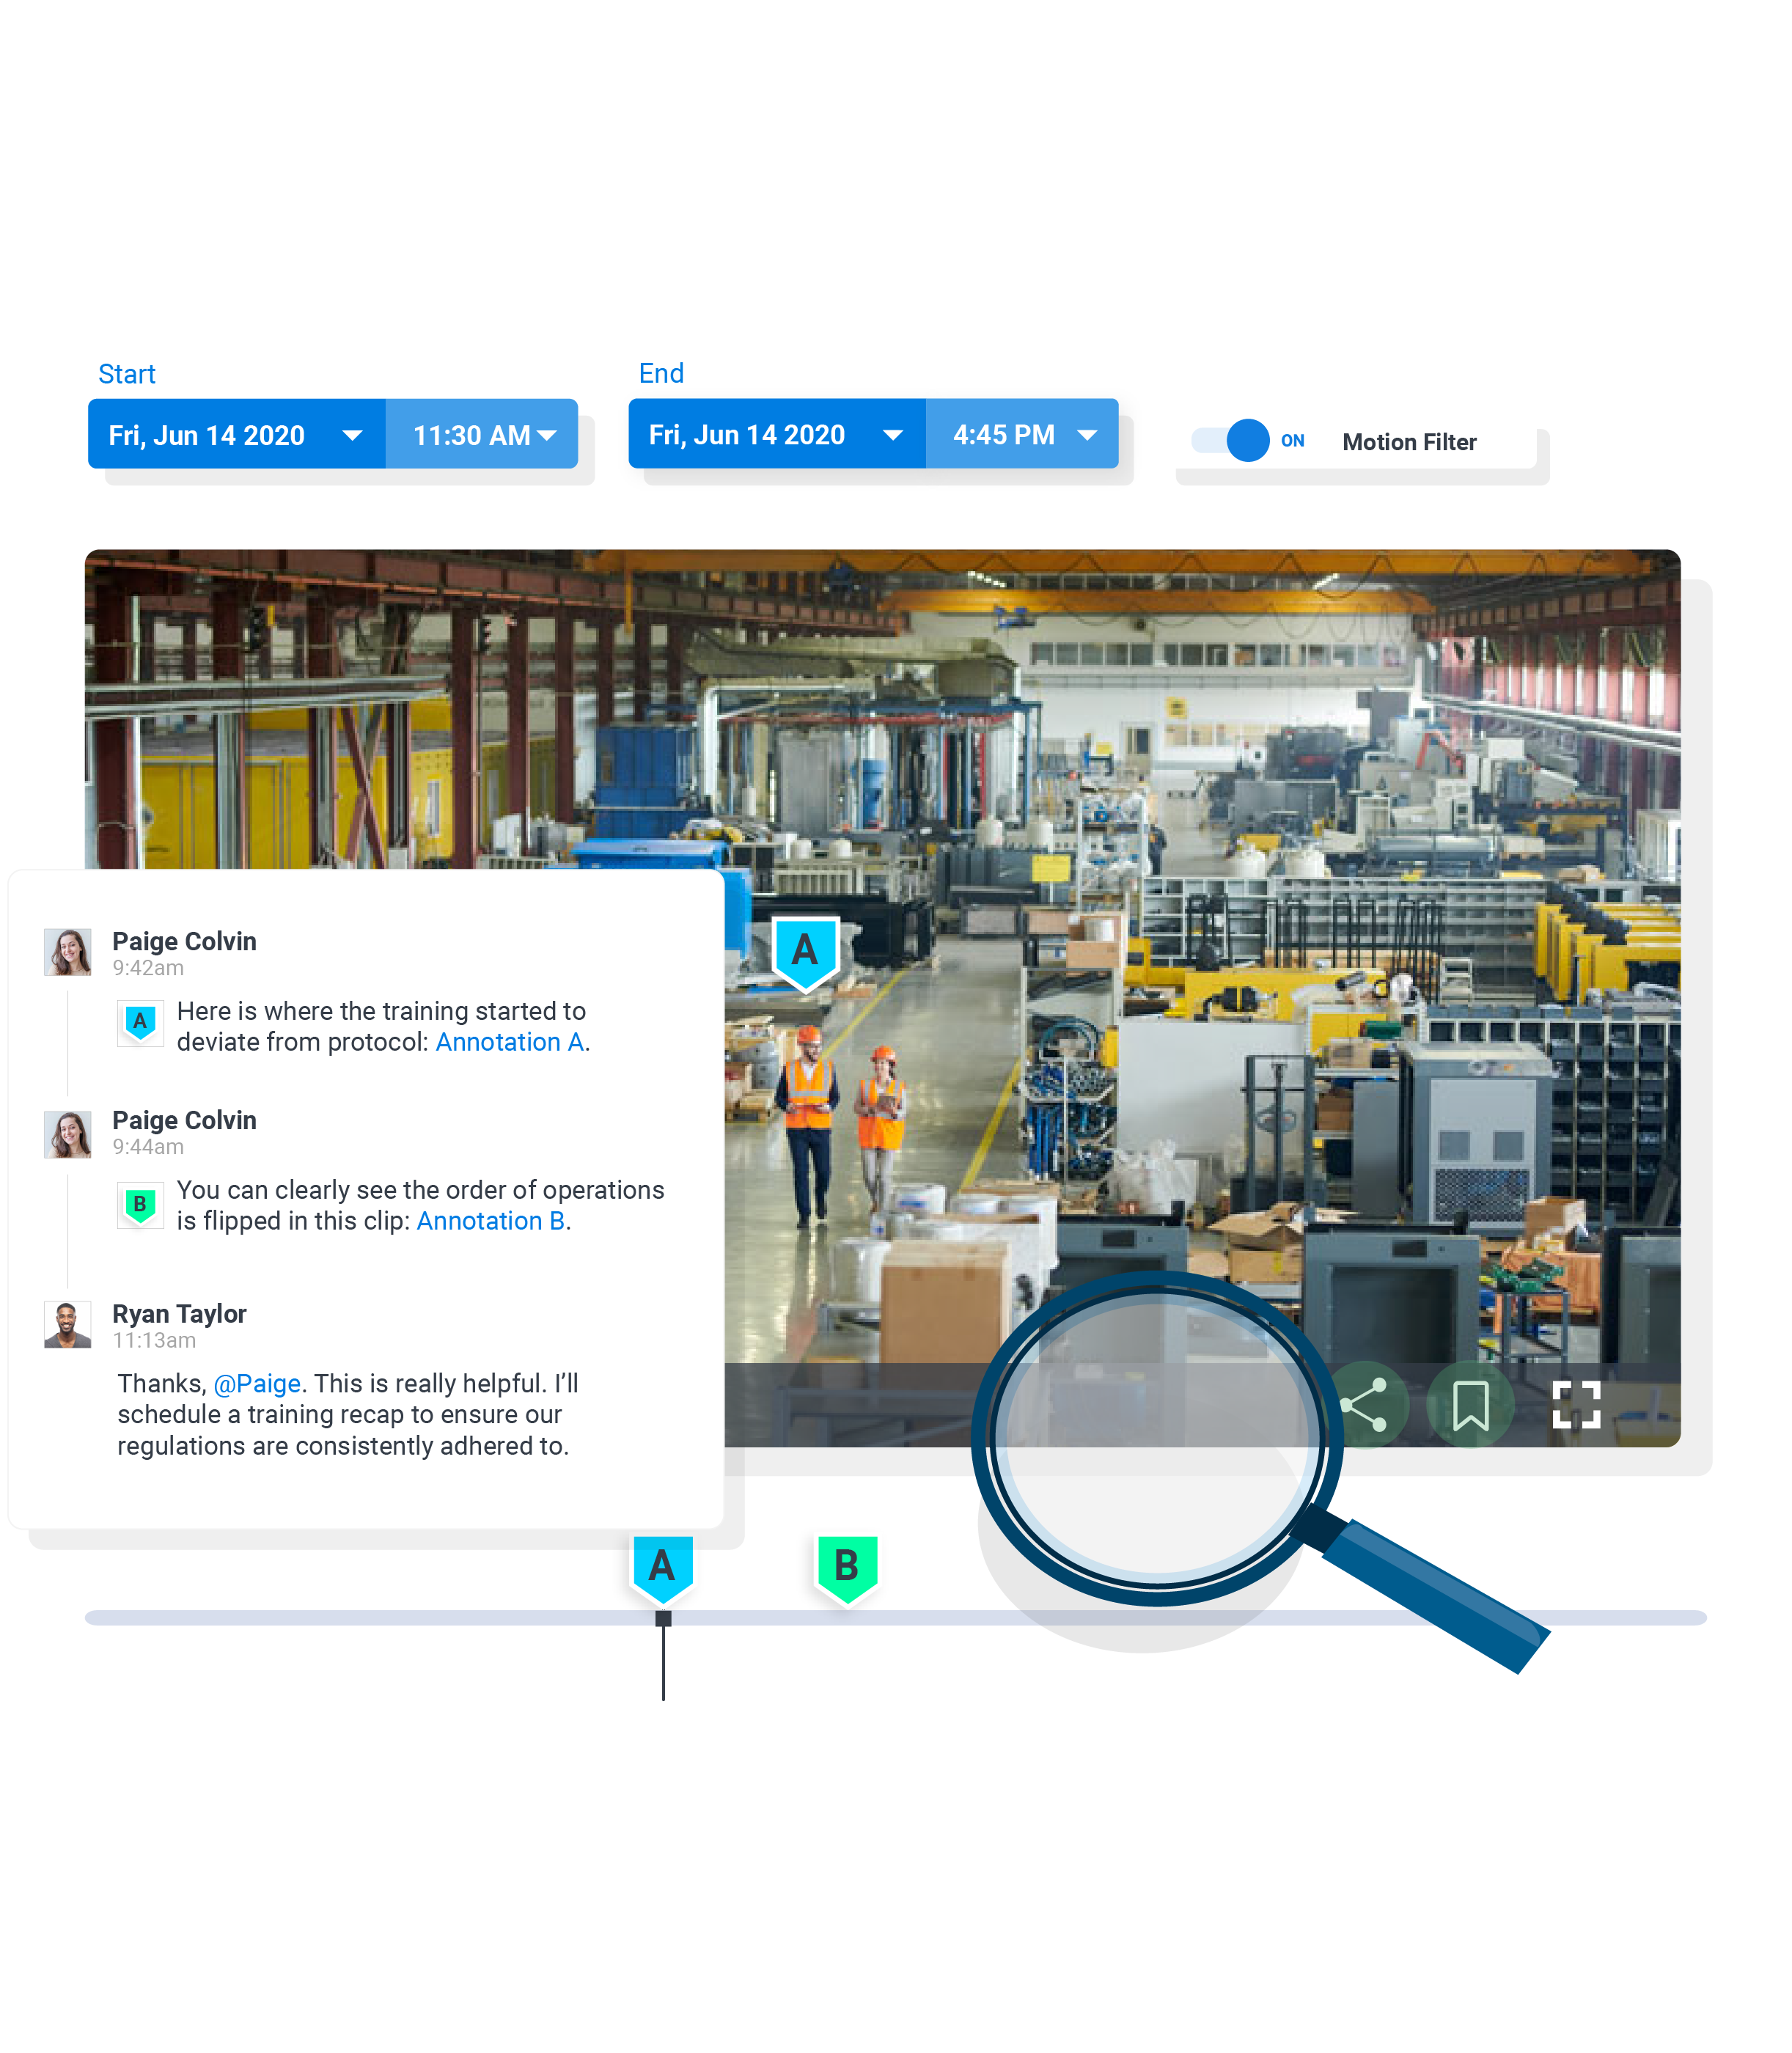 cloud video surveillance clip with annotations highlighting training issues on factory floor